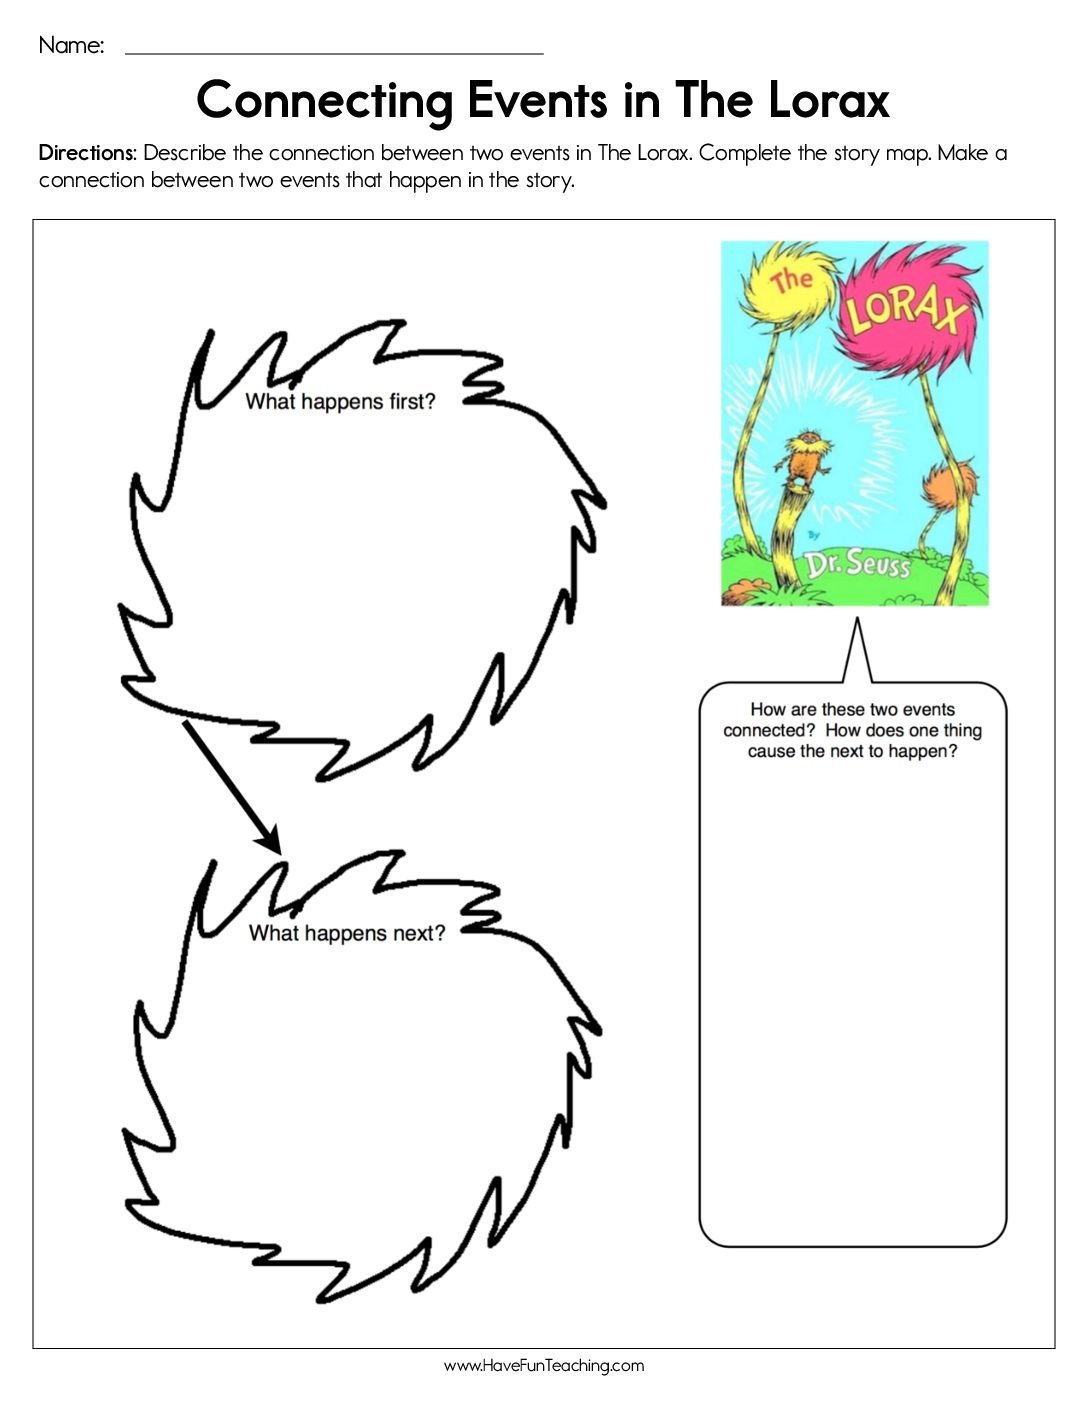 Dr Seuss Worksheets  Have Fun Teaching For The Lorax By Dr Seuss Worksheet